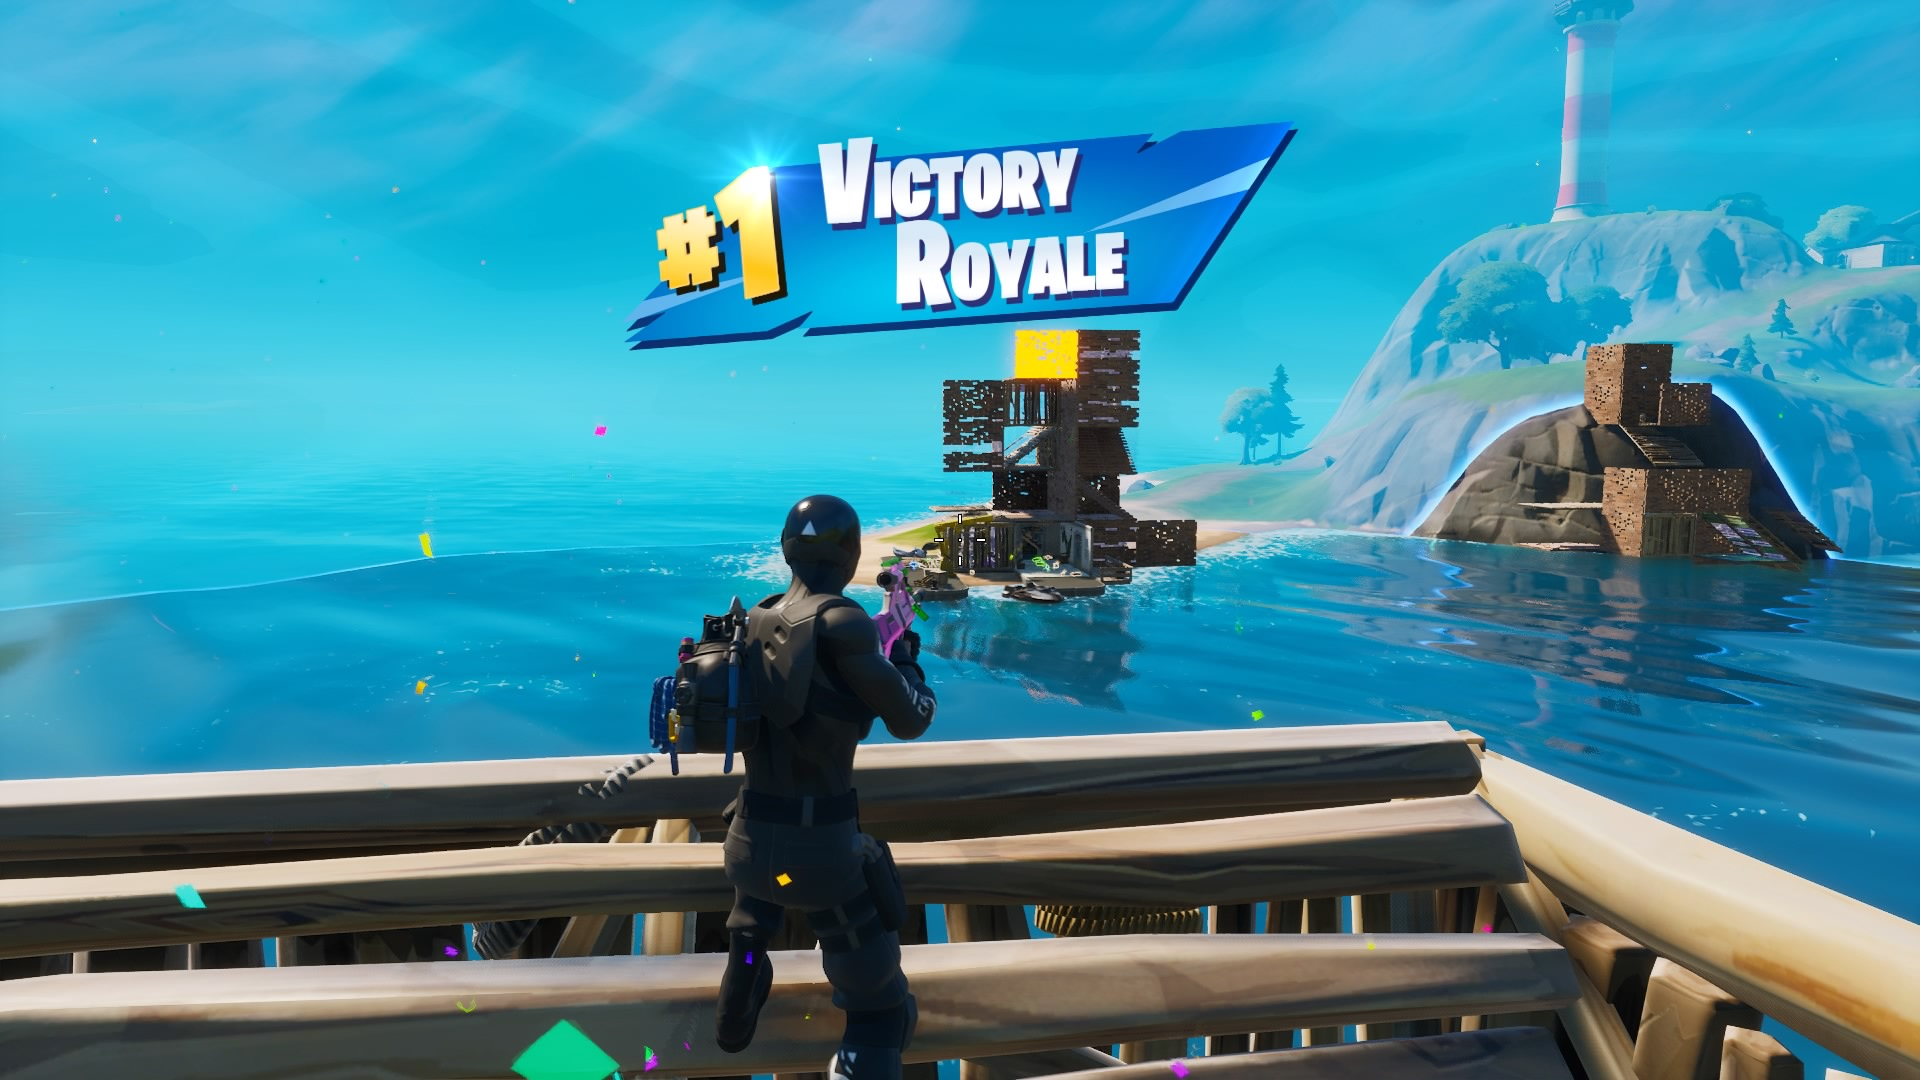 victory royale wallpaper 69517